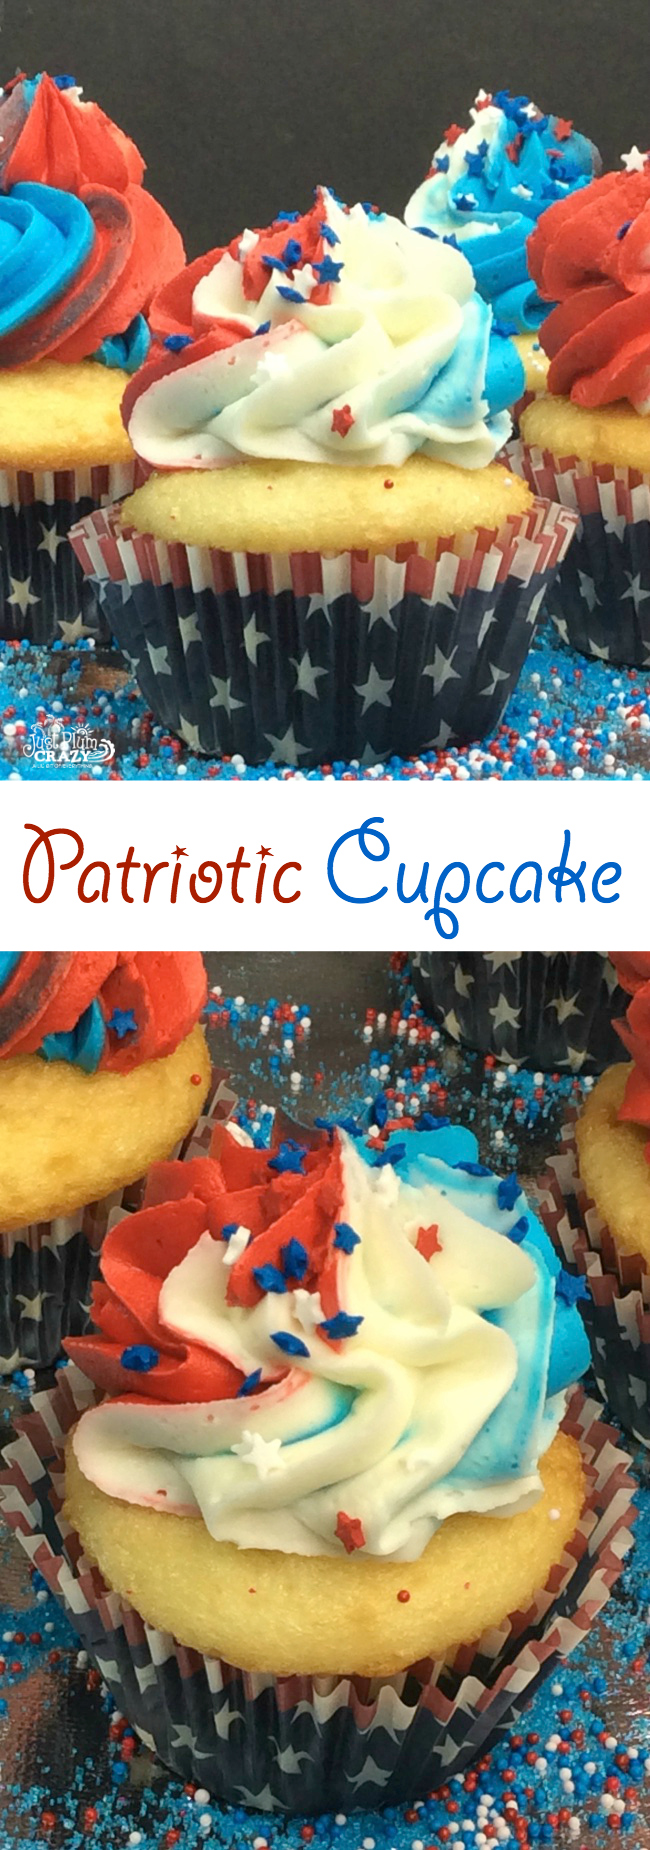 It's good to have a quick recipe that you can whip up for last minute plans that pop up yet still be festive. The Patriotic Cupcake recipe is just that.